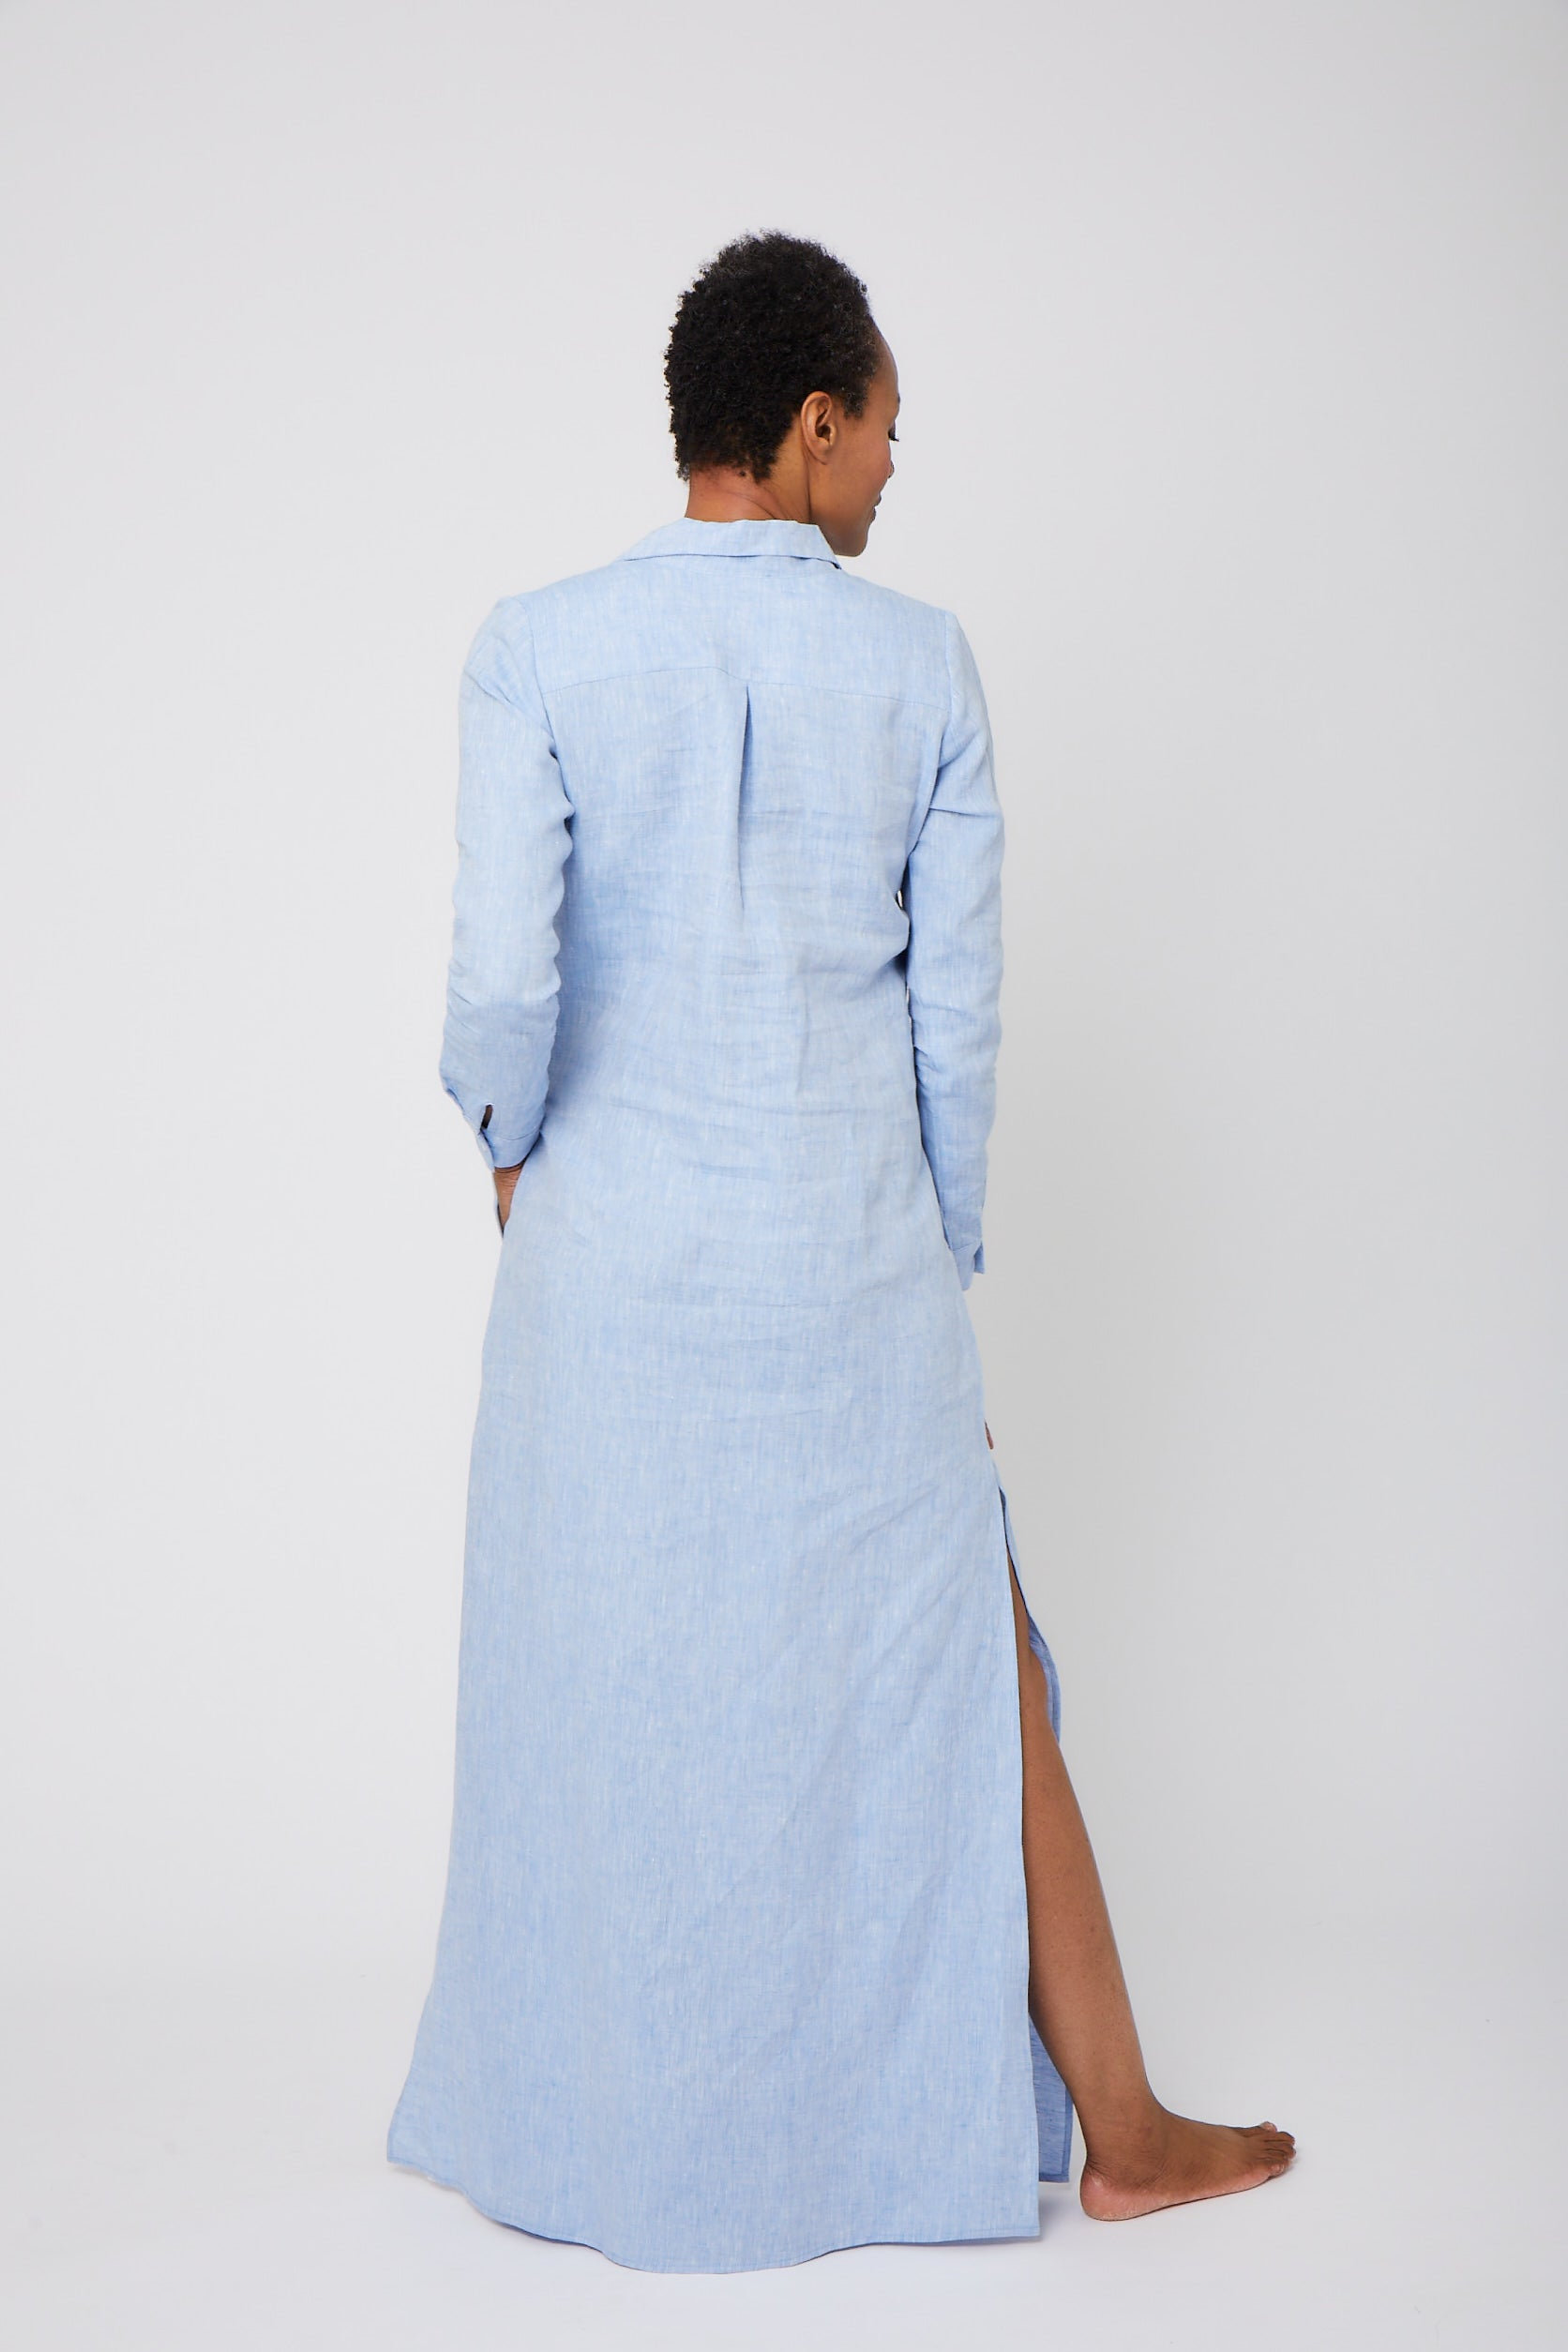 PLF_022620_49_7005_LONG_LINEN_LIGHT_BLUE_DRESS_1307